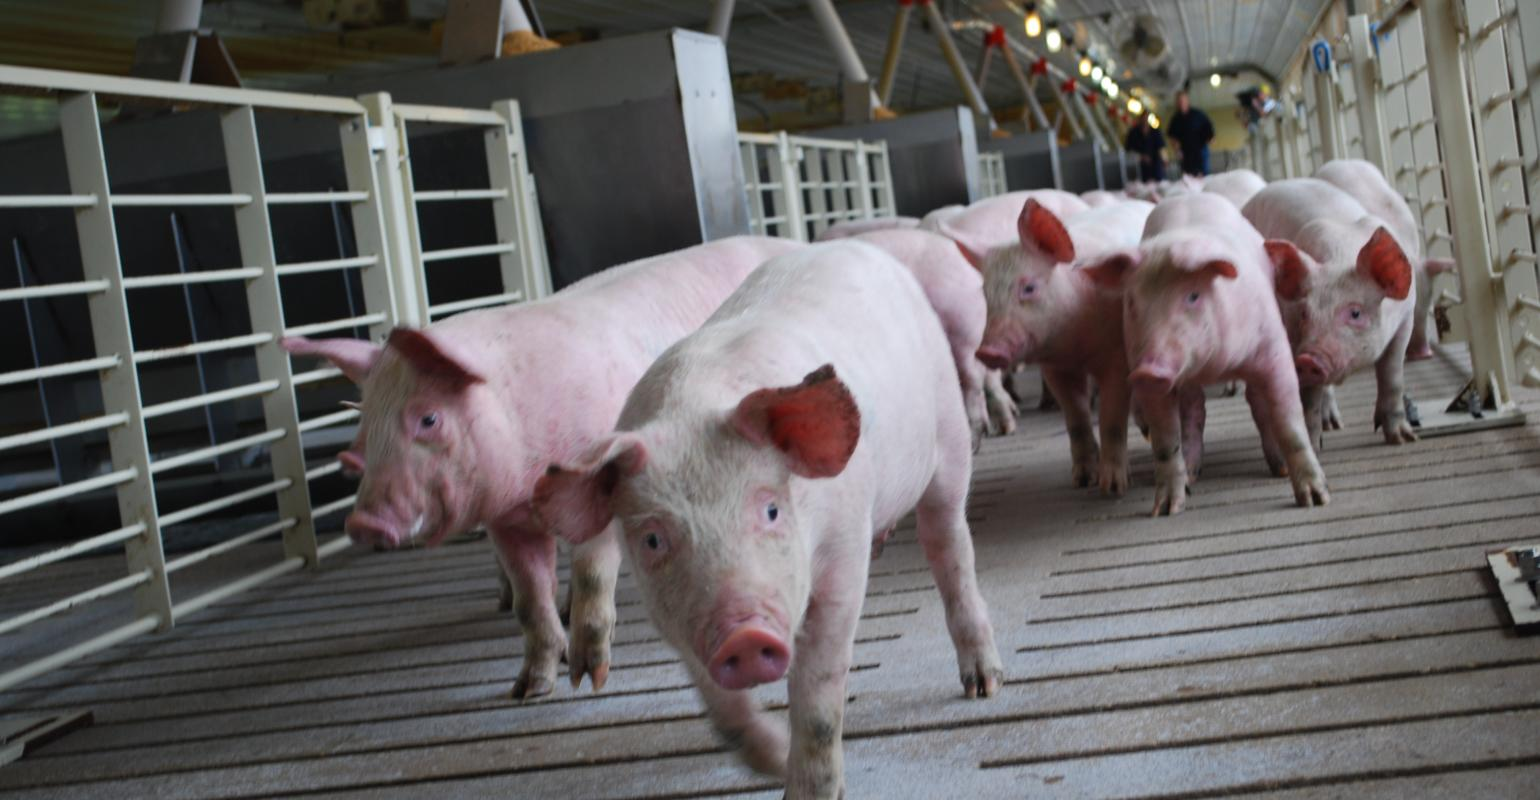 Canadians invest $2 million to study pig welfare ...